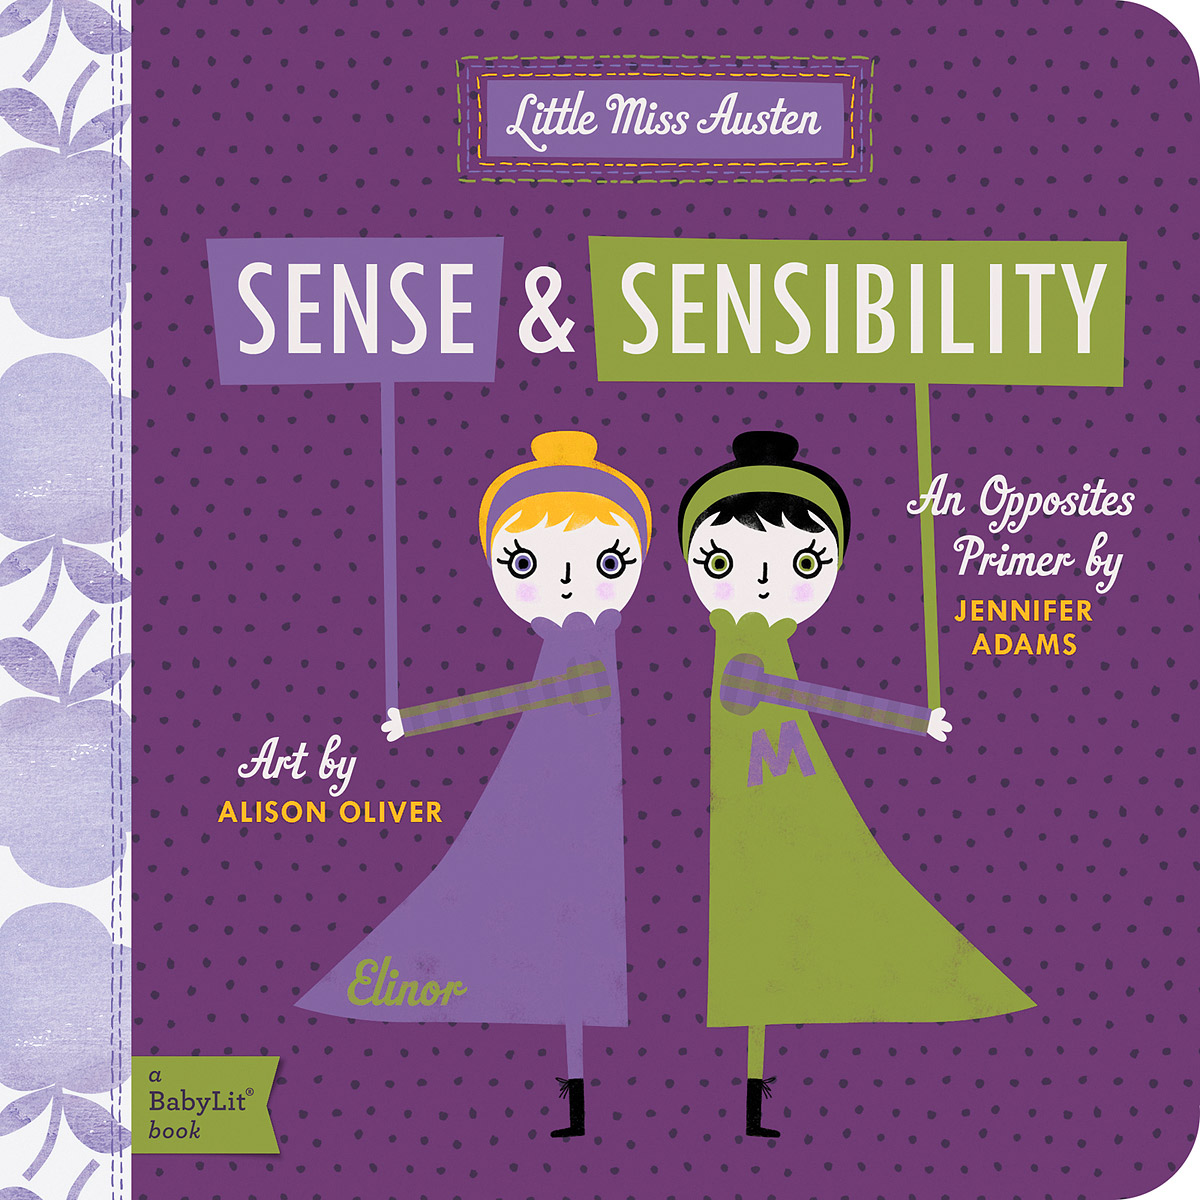 Little Miss Austen: Sense and Sensibility the annotated sense and sensibility